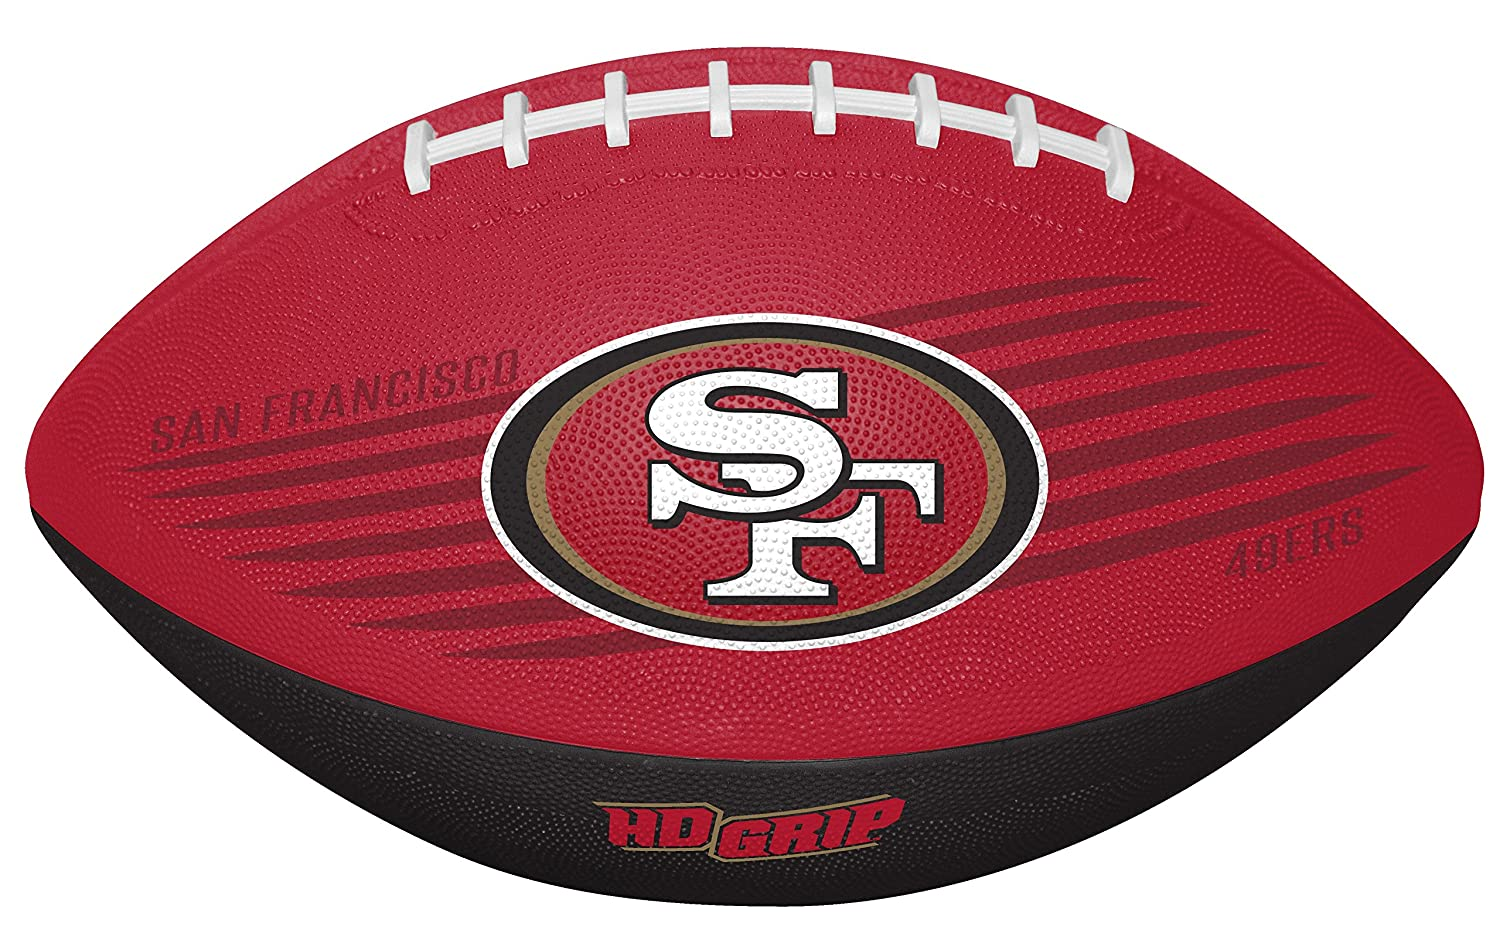 Rawlings NFL Downfield Youth Football San Francisco 49ers San Francisco 49ers B07DR4L7WH